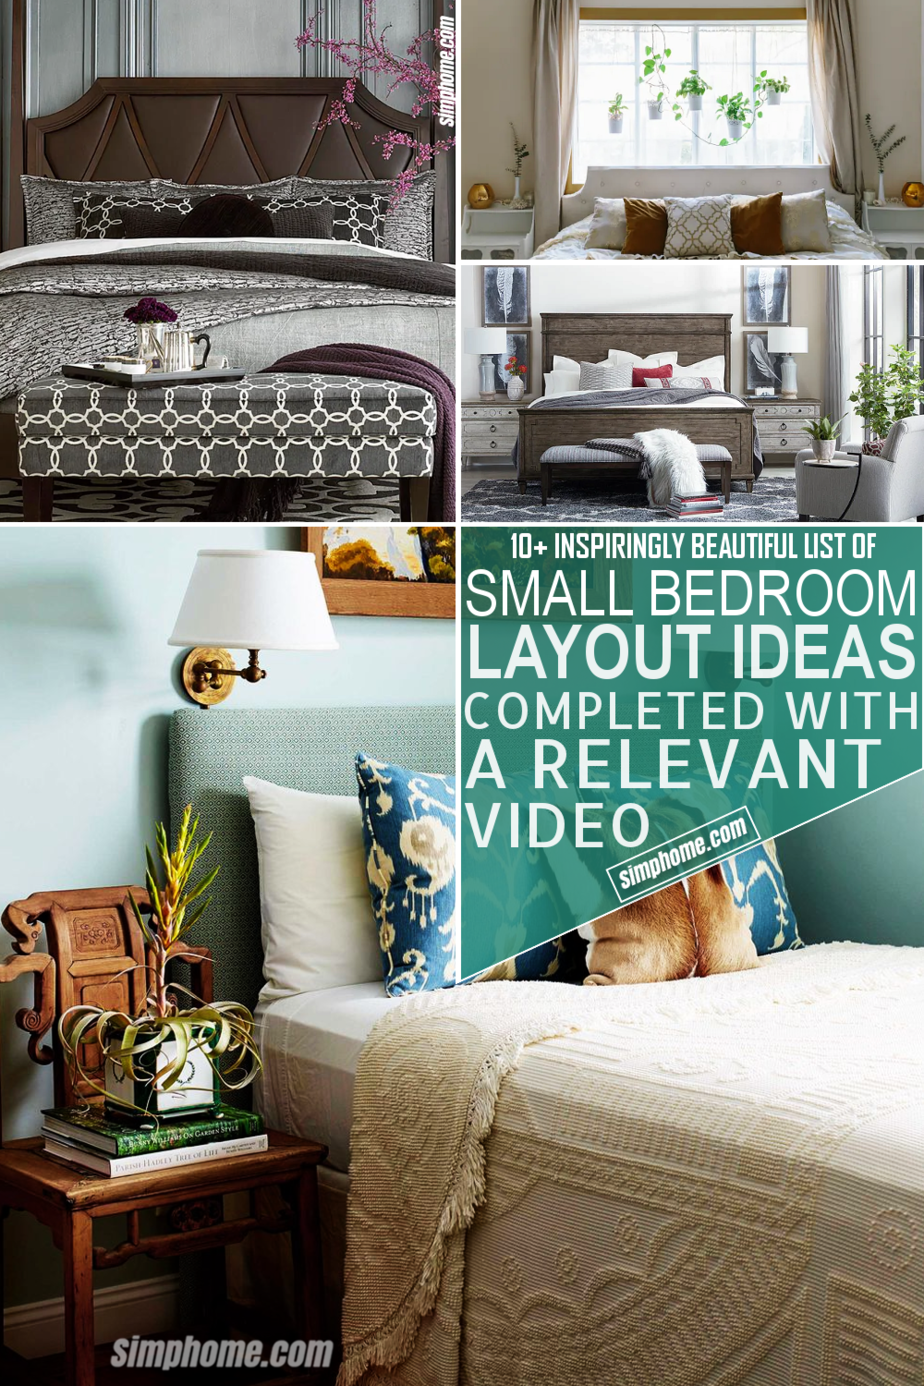 10 Small Bedroom Layout Ideas by Simphome.com